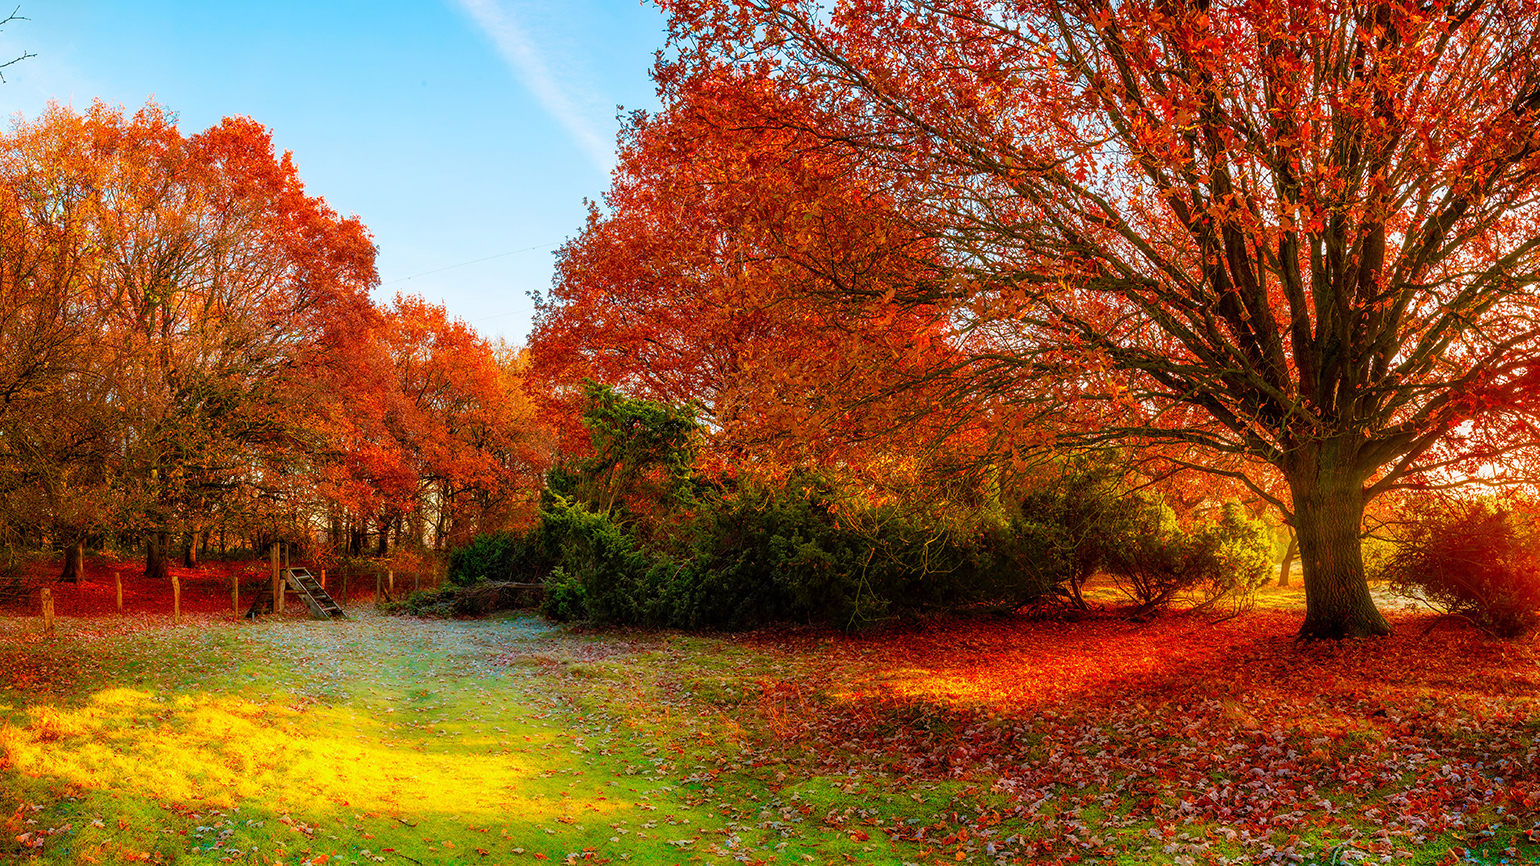 Brightly hued trees surround an autumn meadow